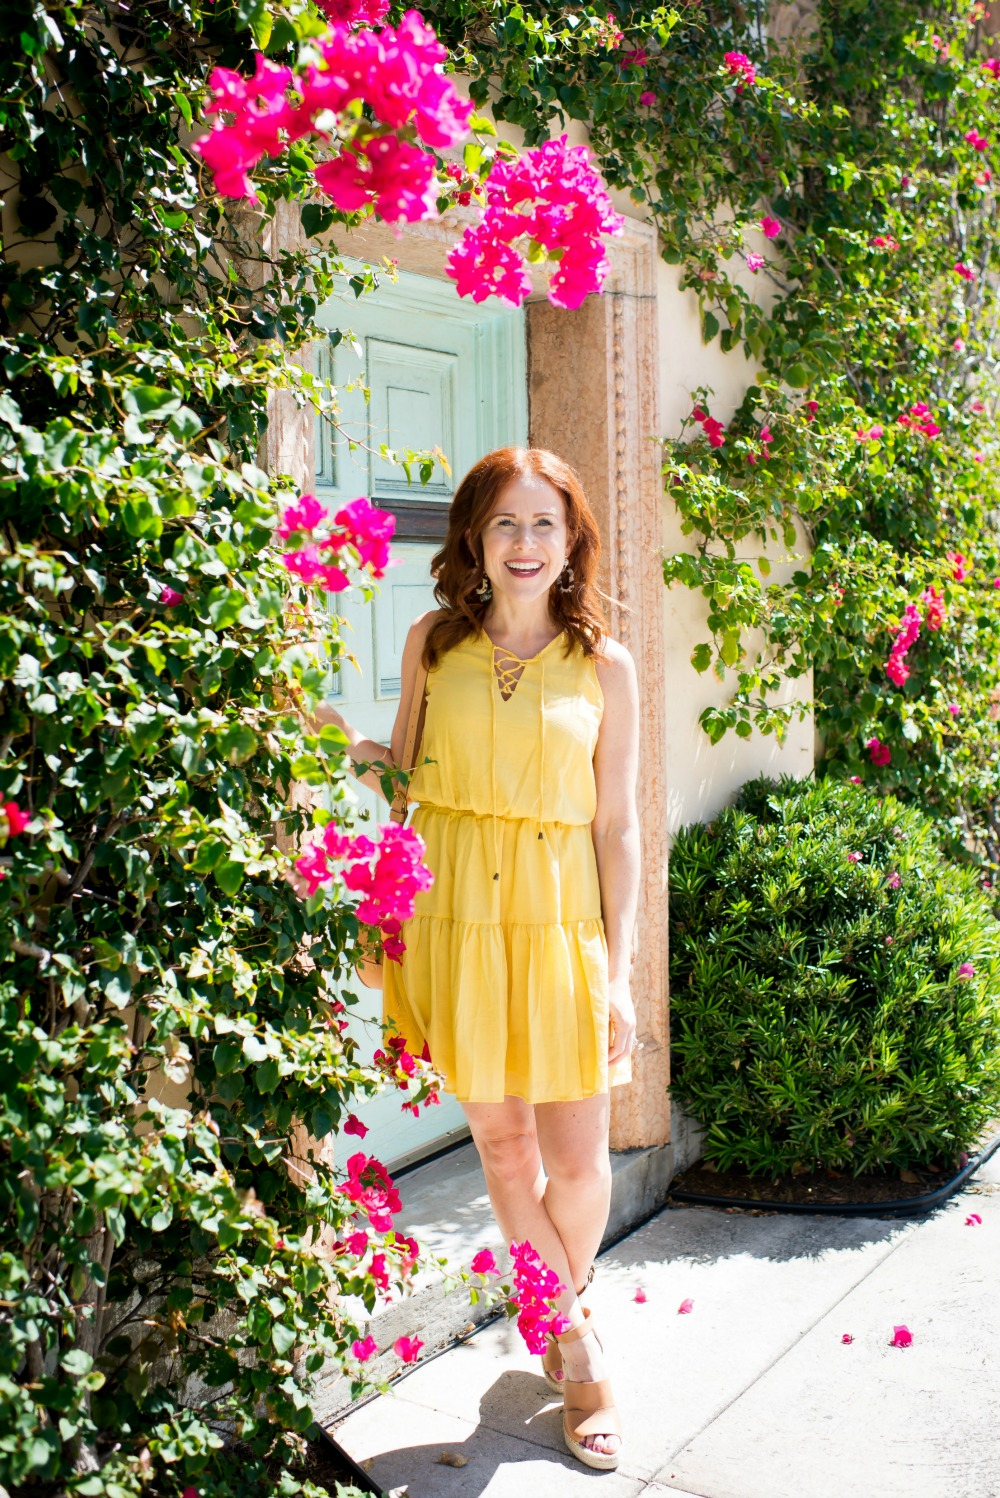 The yellow dress for spring // the modern savvy, a life & style blog in florida - Cute Yellow Dress styled by popular Florida fashion blogger, The Modern Savvy